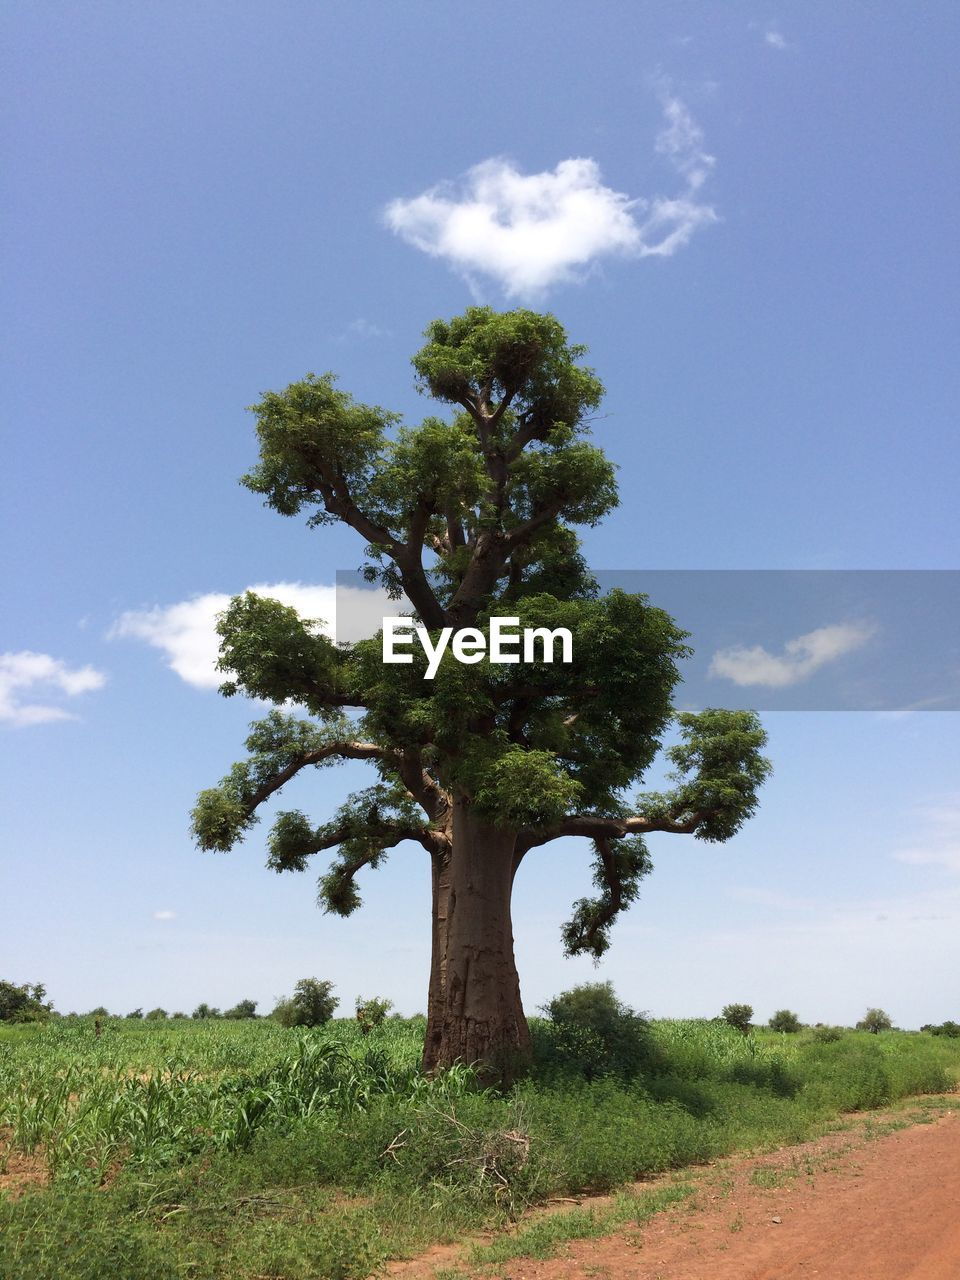 tree, growth, nature, sky, day, landscape, cloud - sky, scenics, field, no people, tranquility, beauty in nature, tranquil scene, outdoors, blue, green color, low angle view, plant, tree trunk, grass